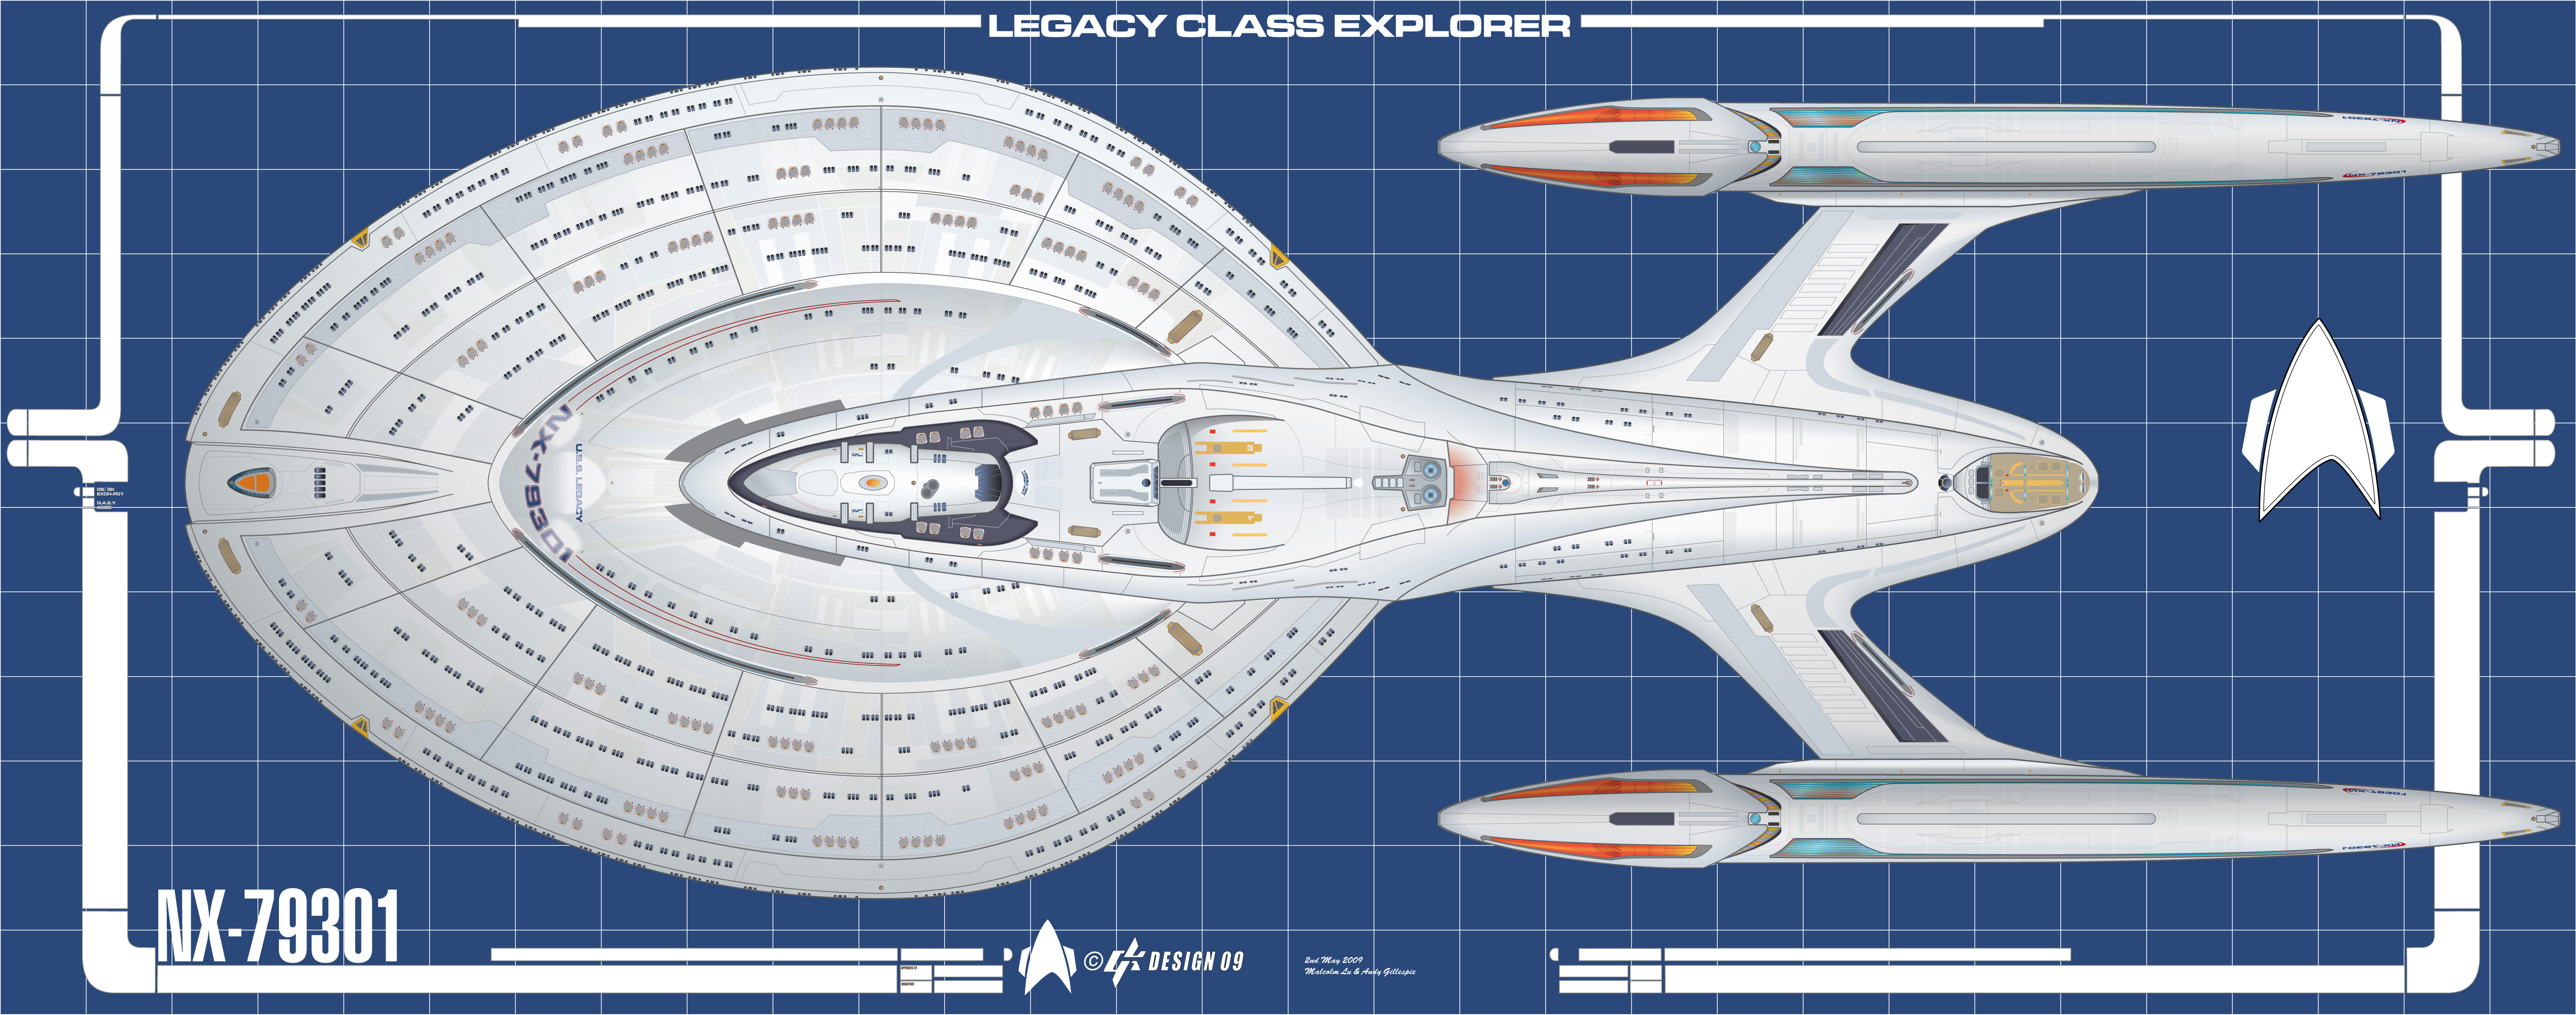 Legacy class mk 2 blueprint 2 by galen82 on deviantart legacy class mk 2 blueprint 2 by galen82 malvernweather Gallery